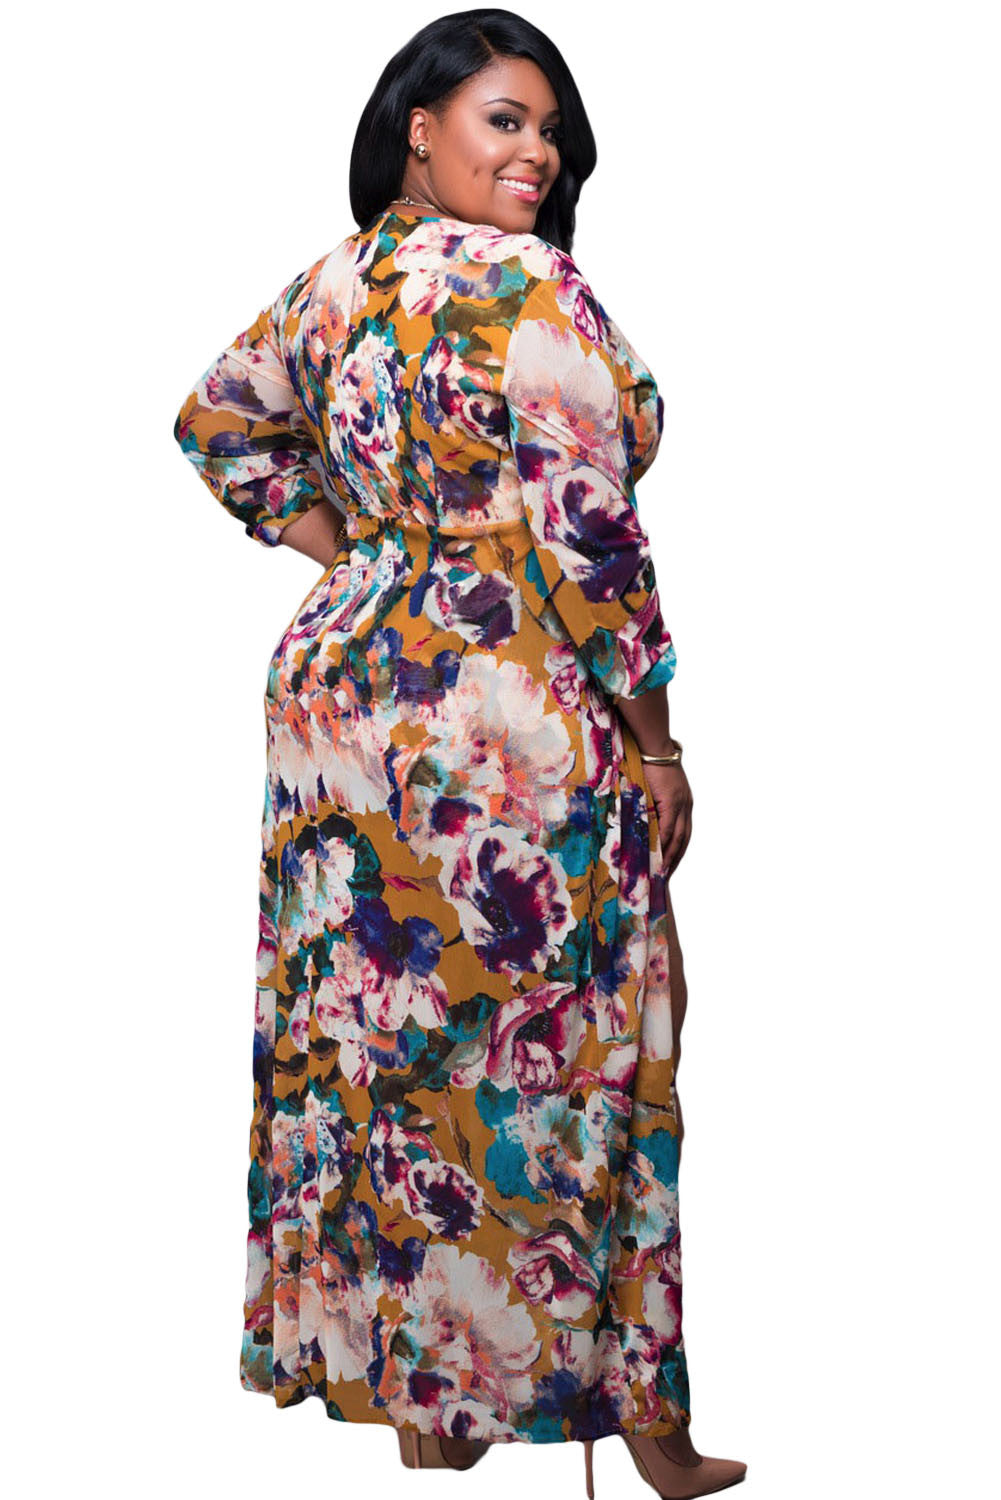 Plus Size Diva Long Sleeved Floral Romper Maxi Dress Ibl Fashion